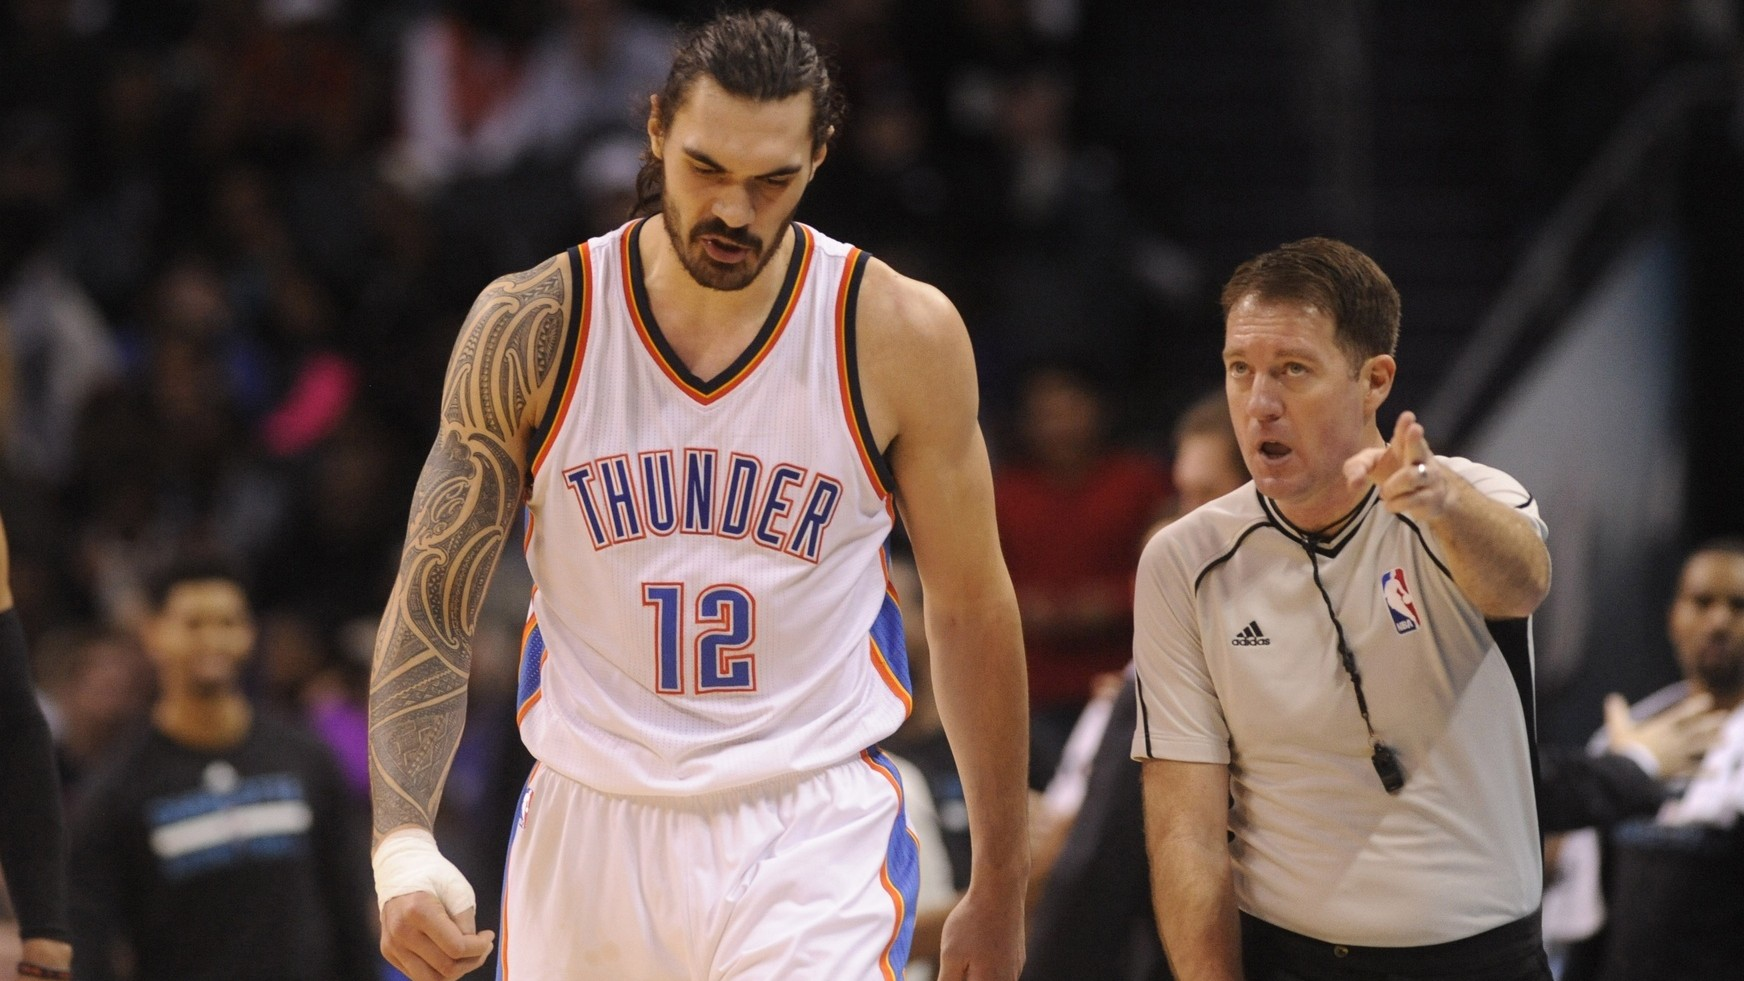 It's No Coincidence That, Without Big Kiwi Steven Adams, OKC Bombed